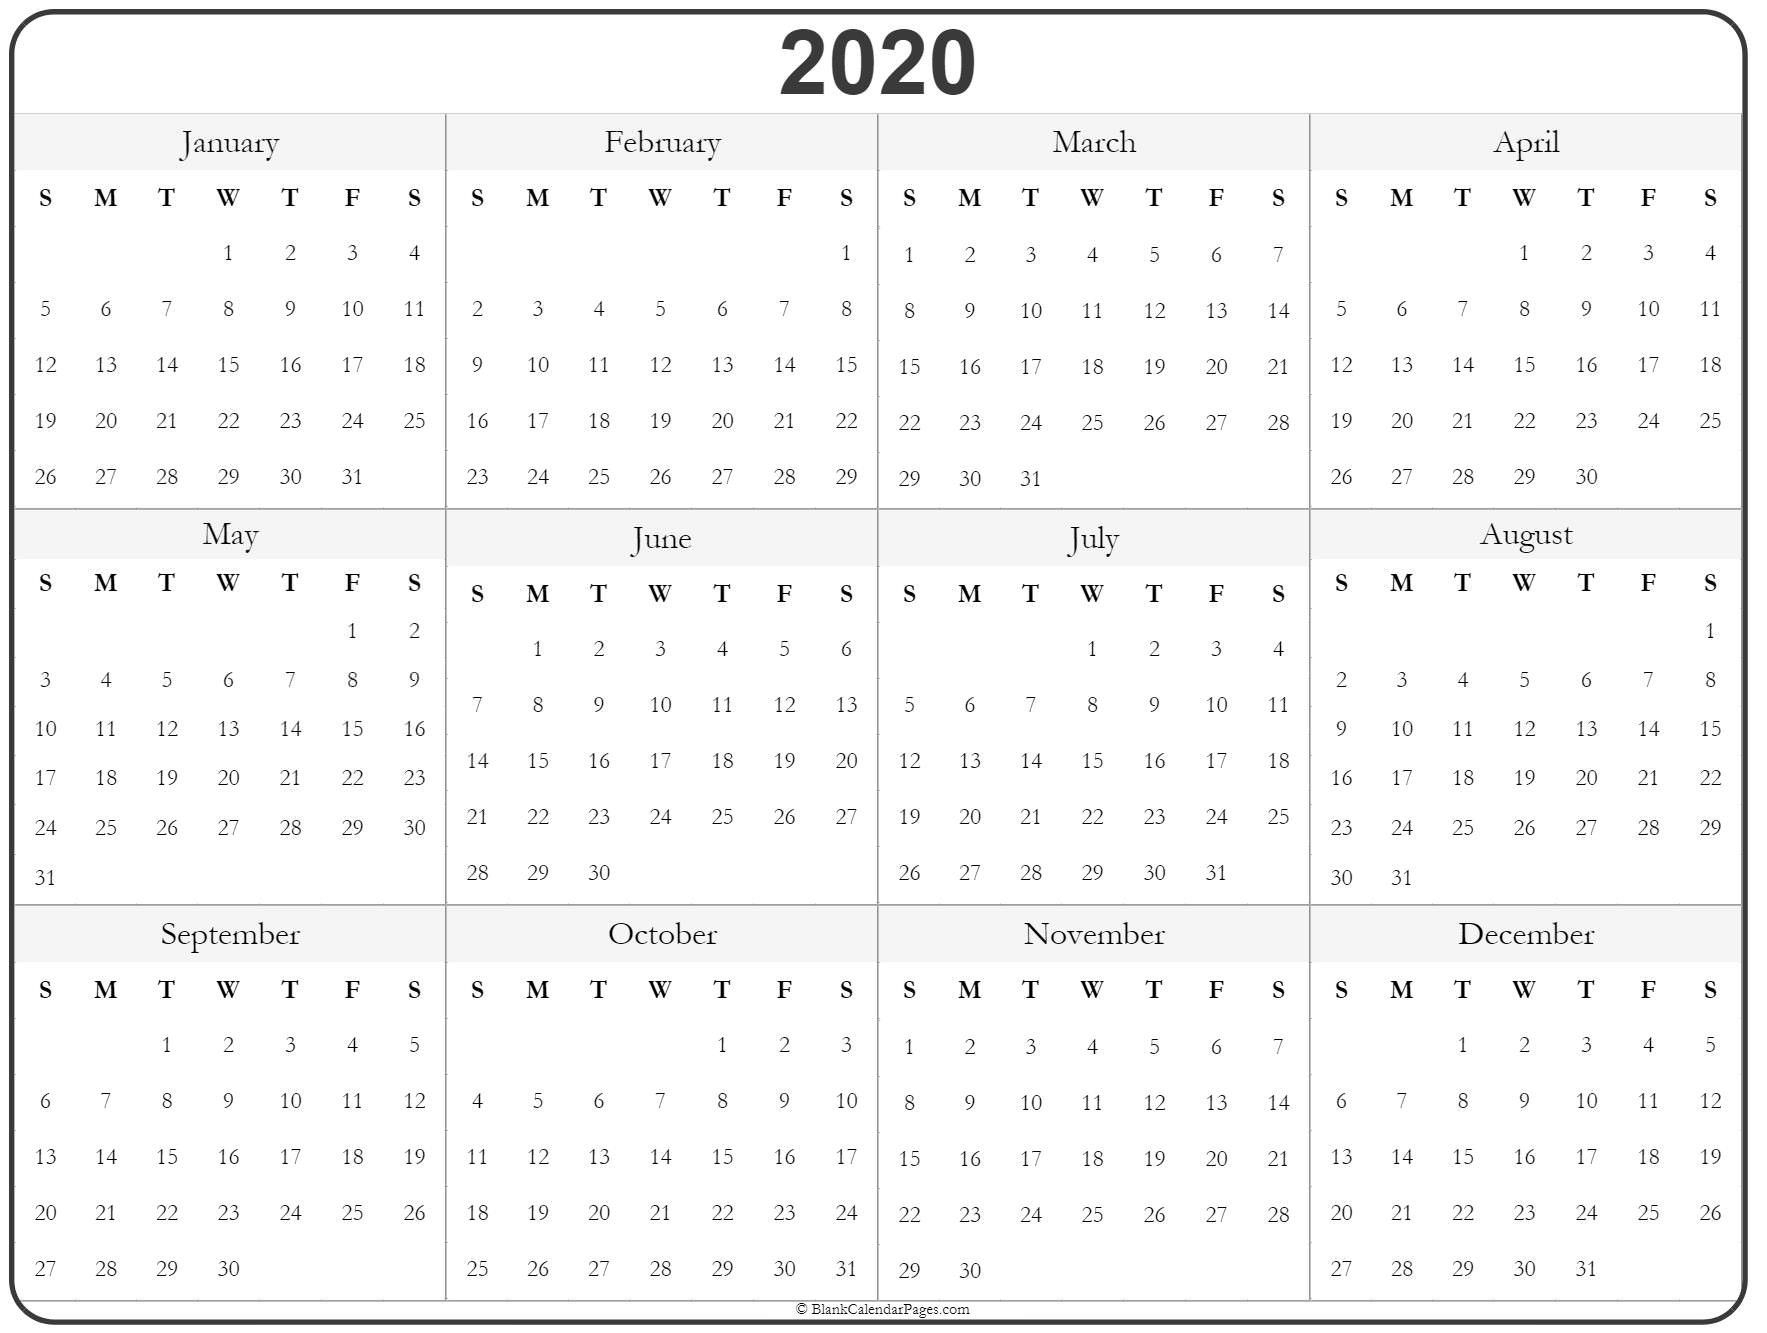 Free Printable Yearly Calendar 2020 | Printable Yearly